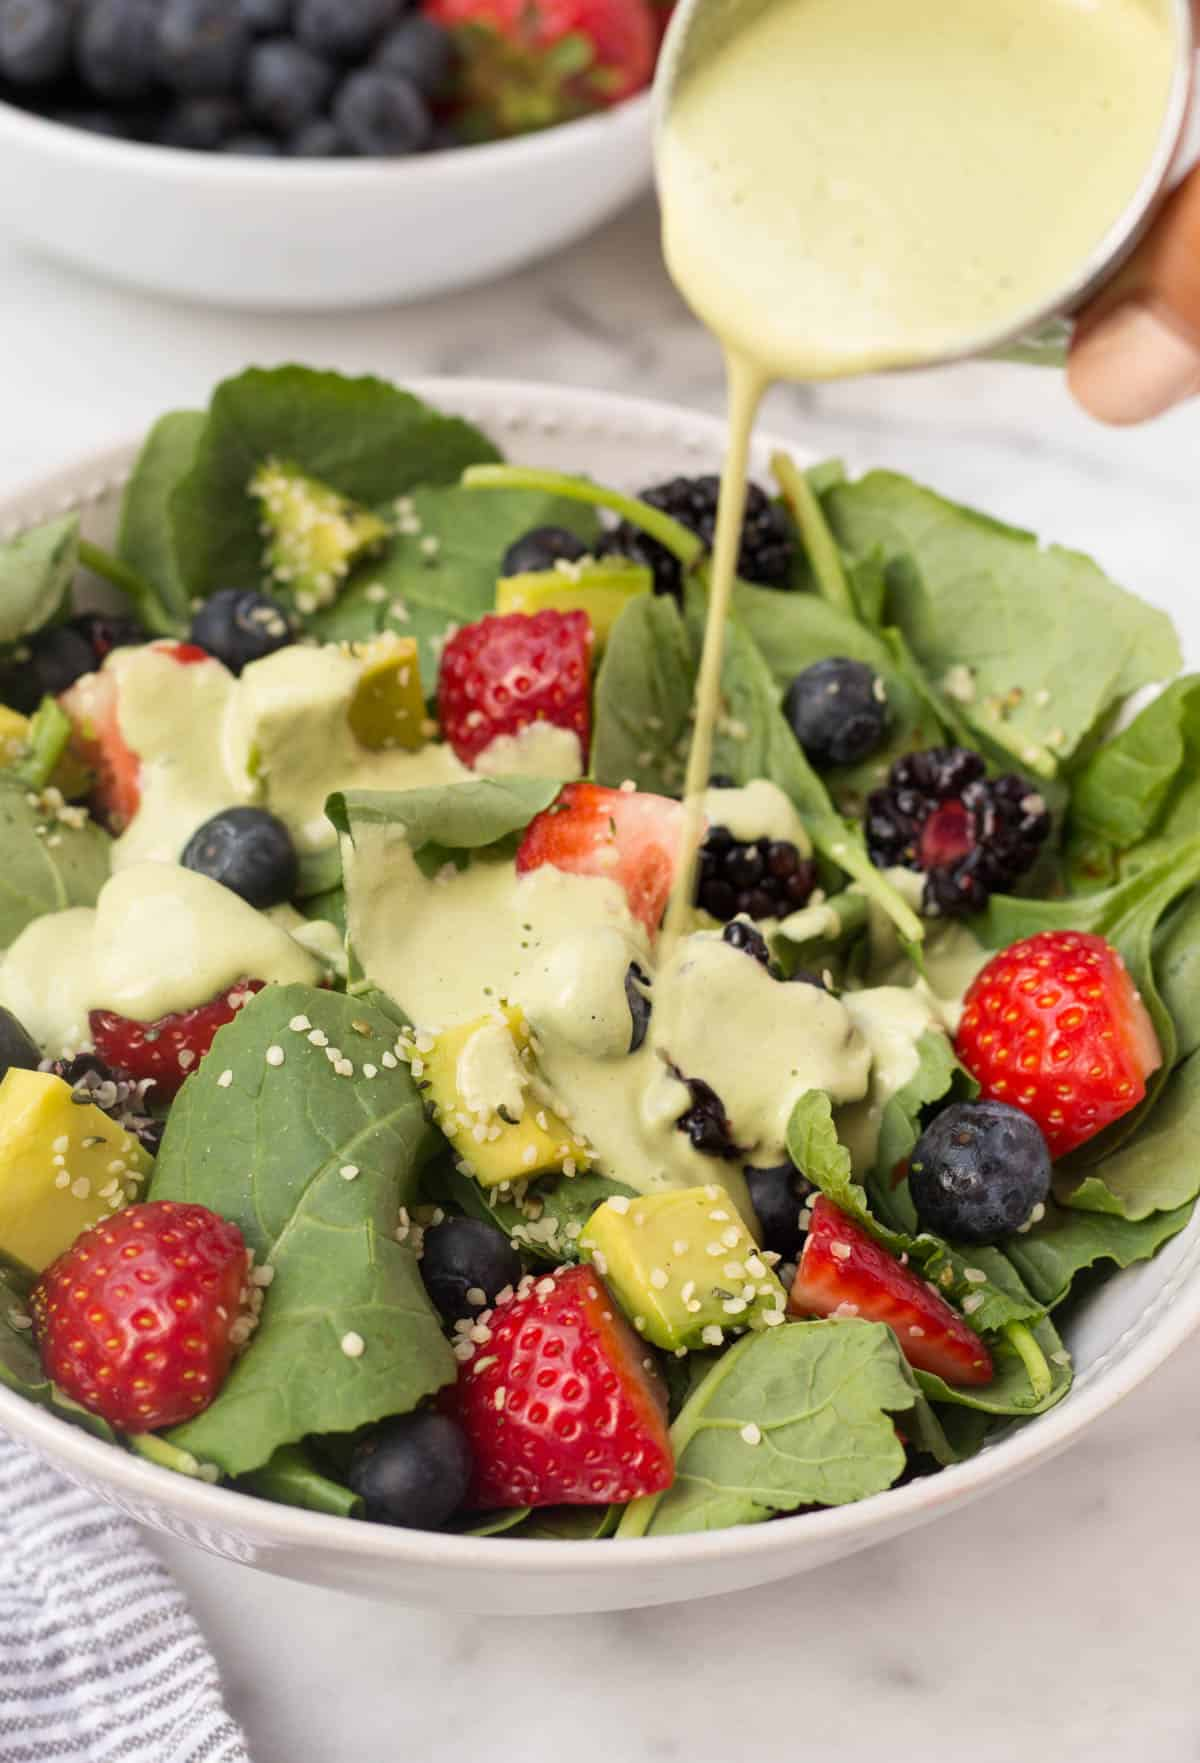 A perfect easy & light end of summer dish, this Berry Avocado Salad with Creamy Matcha Dressing packs the nutrients & is paleo, vegan, dairy free, & Whole30 approved! - Eat the Gains